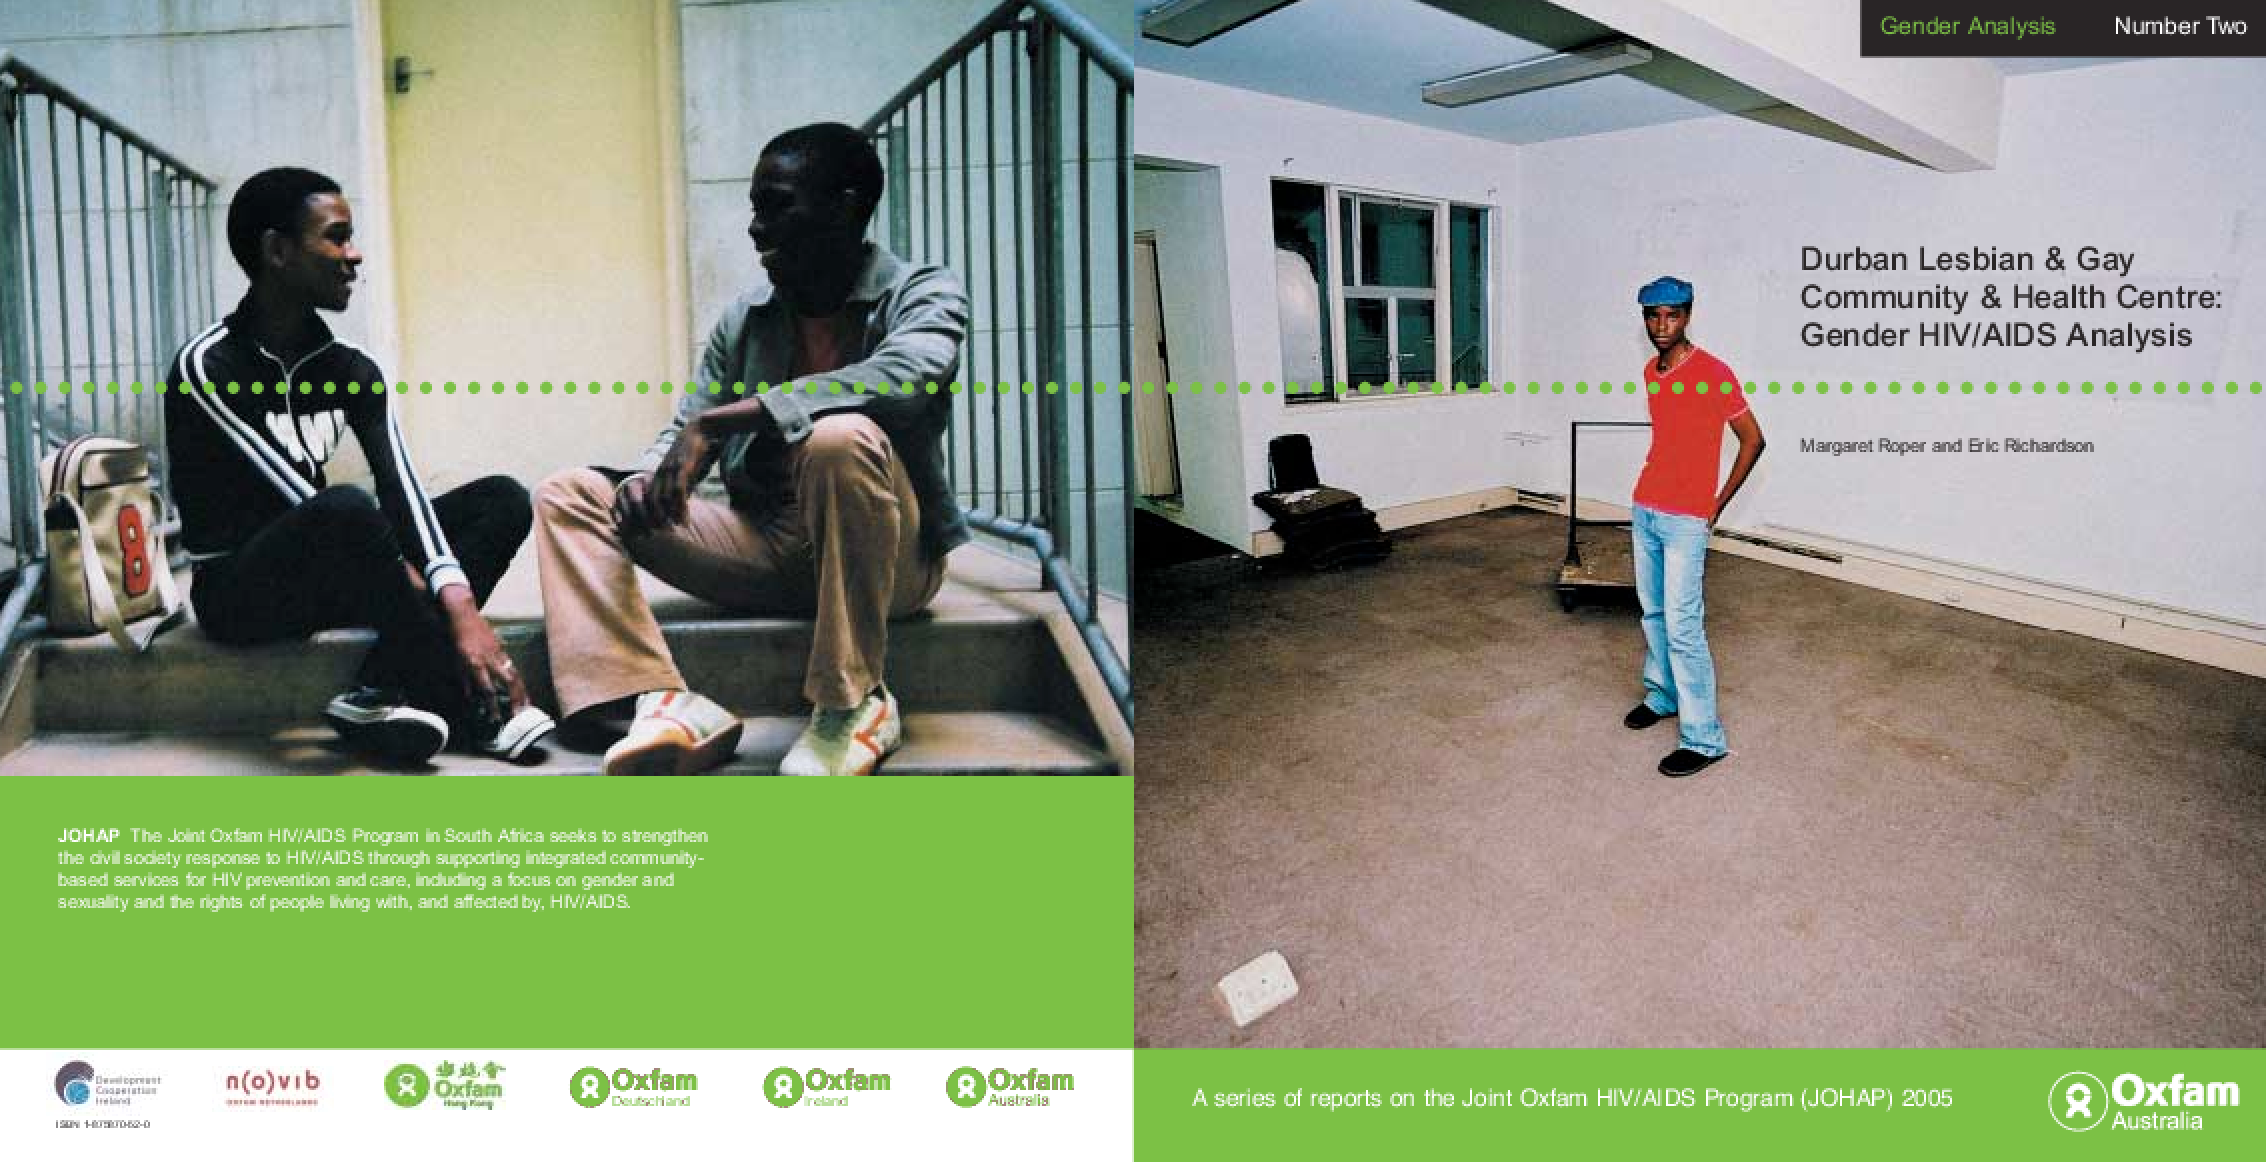 Durban Lesbian and Gay Community and Health Centre: Gender HIV/AIDS analysis